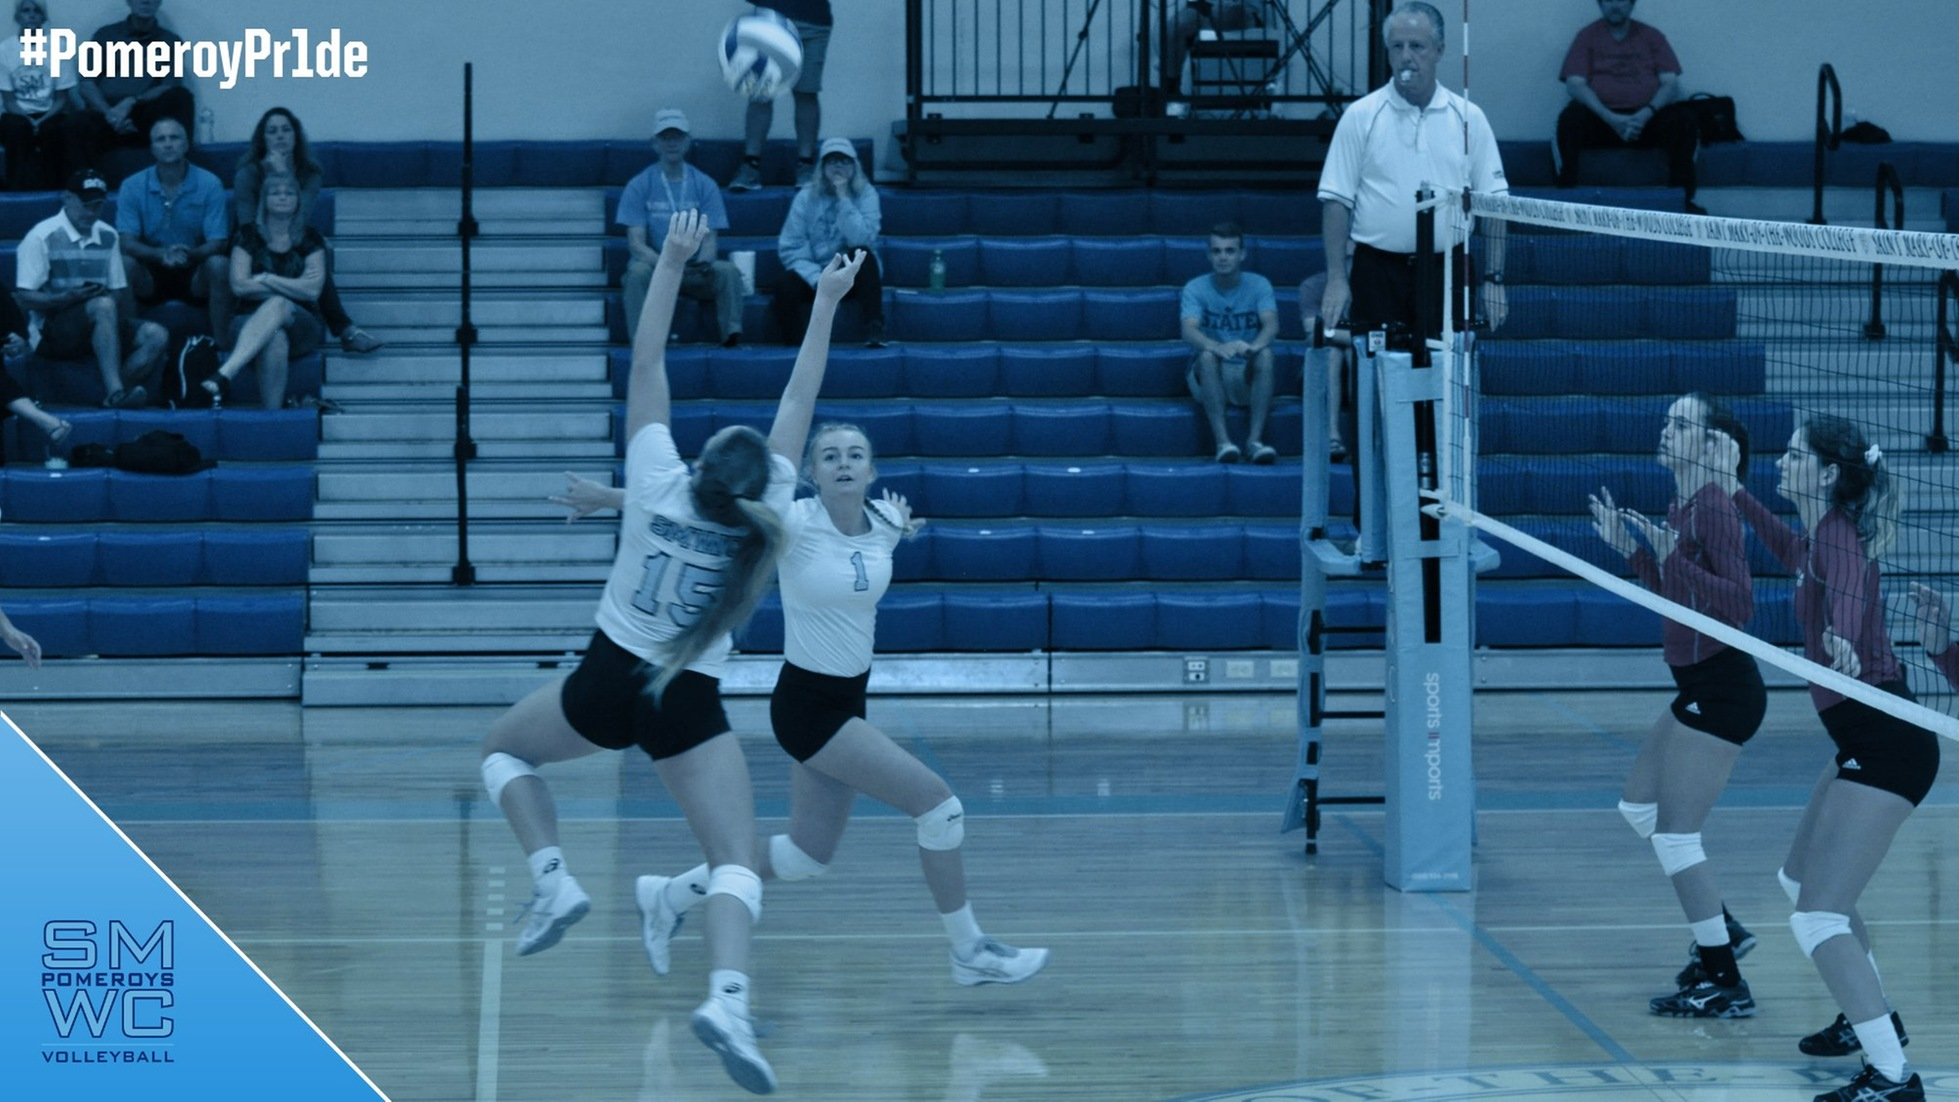 SMWC Falls Short in Five-Set Match